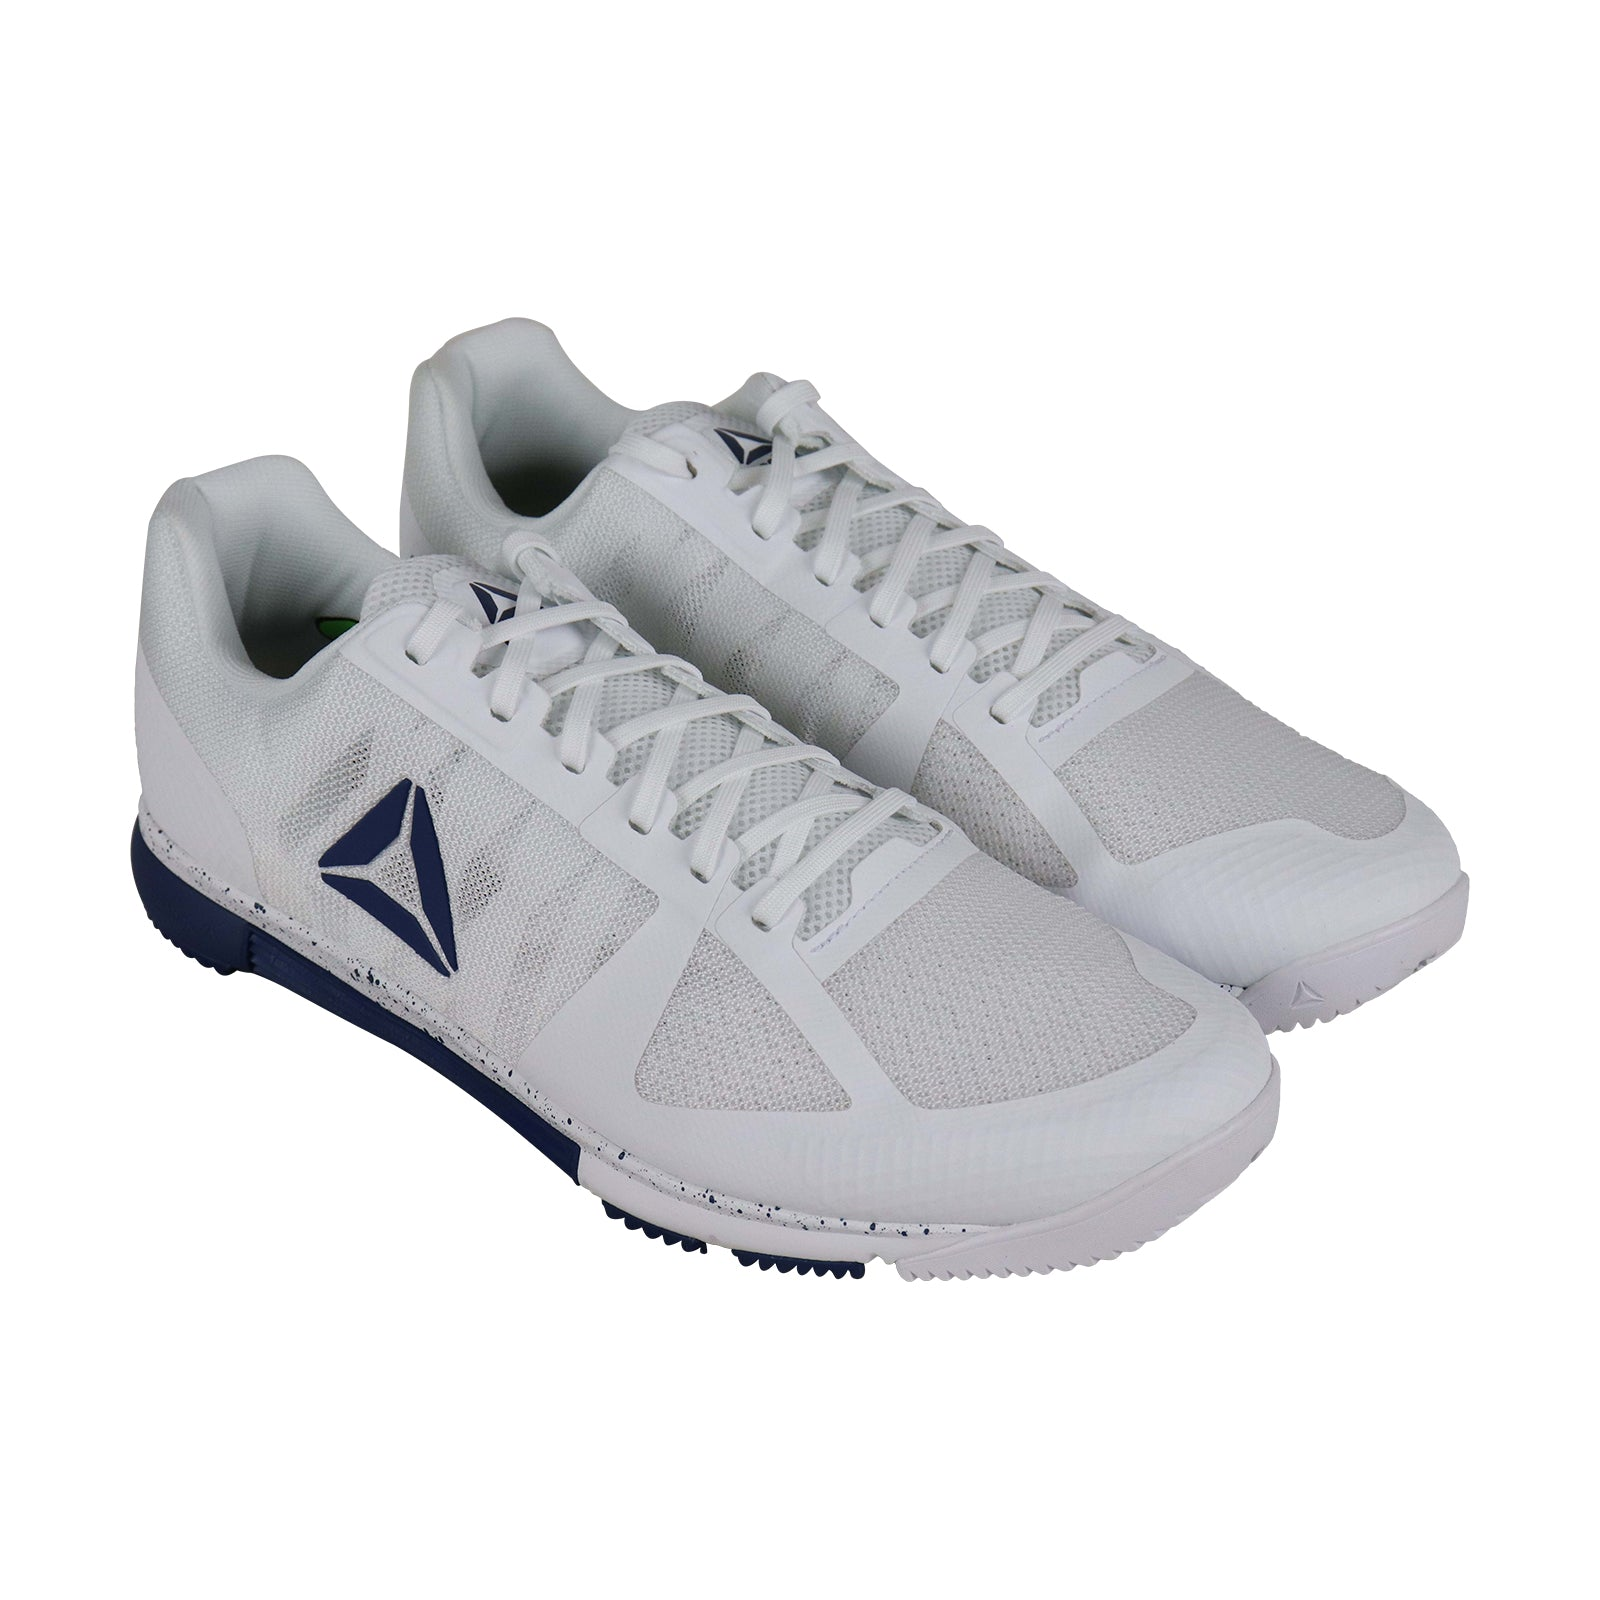 Reebok Speed Tr Mens White Mesh Low Top Lace Up Sneakers Shoes